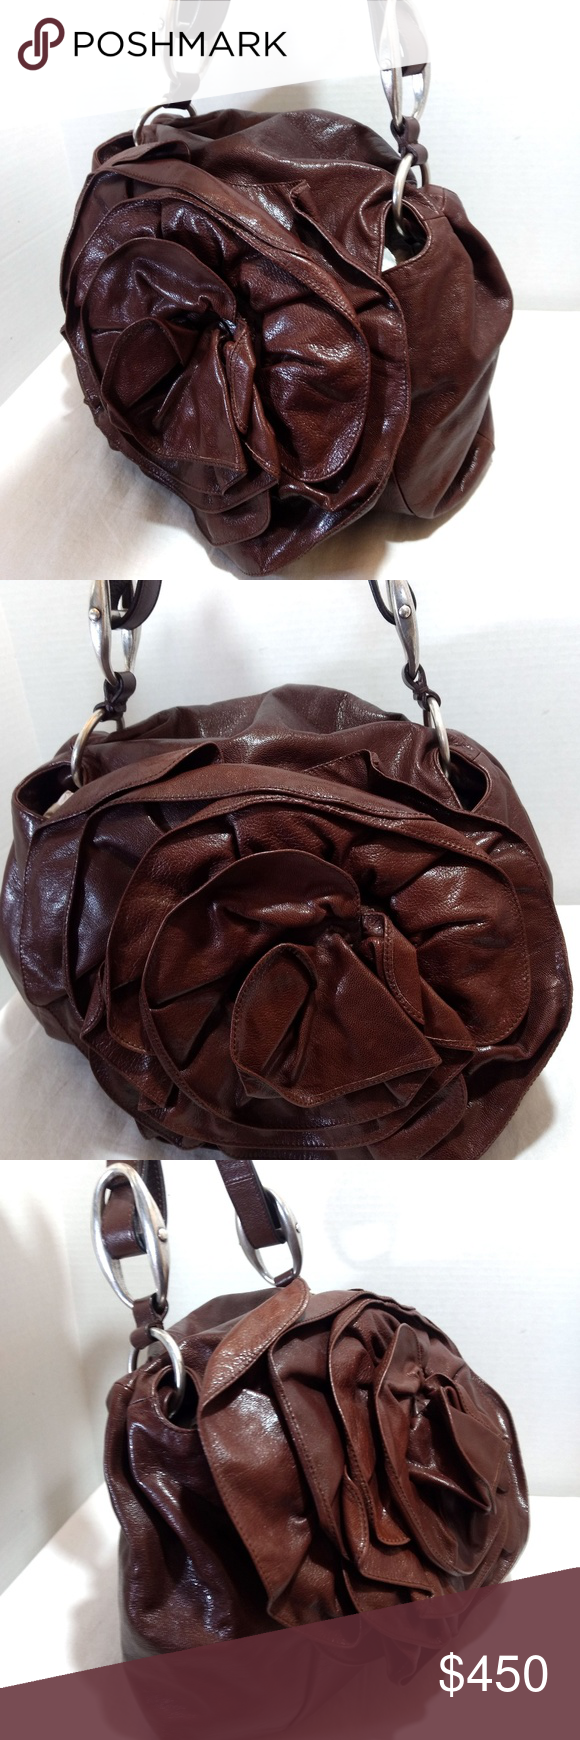 a4dc58fc16a4 YSL Yves Saint Laurent Brown Leather Flower Bag Gorgeous Authentic YSL Yves  Saint Laurent Brown Leather